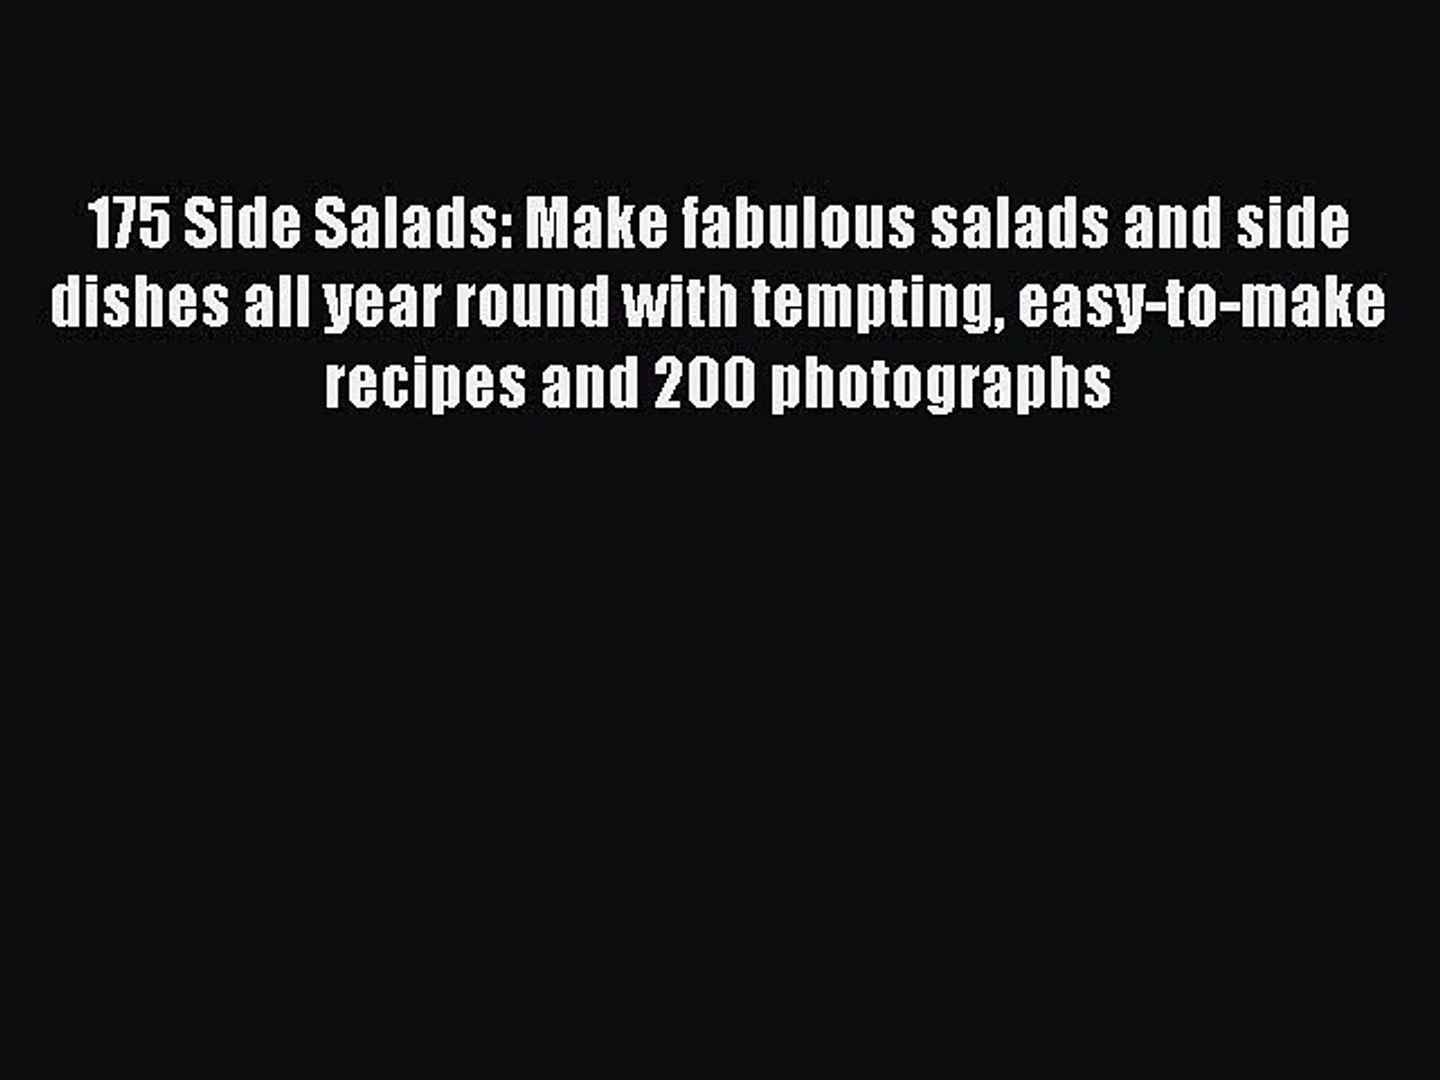 Read 175 Side Salads: Make fabulous salads and side dishes all year round with tempting easy-to-make